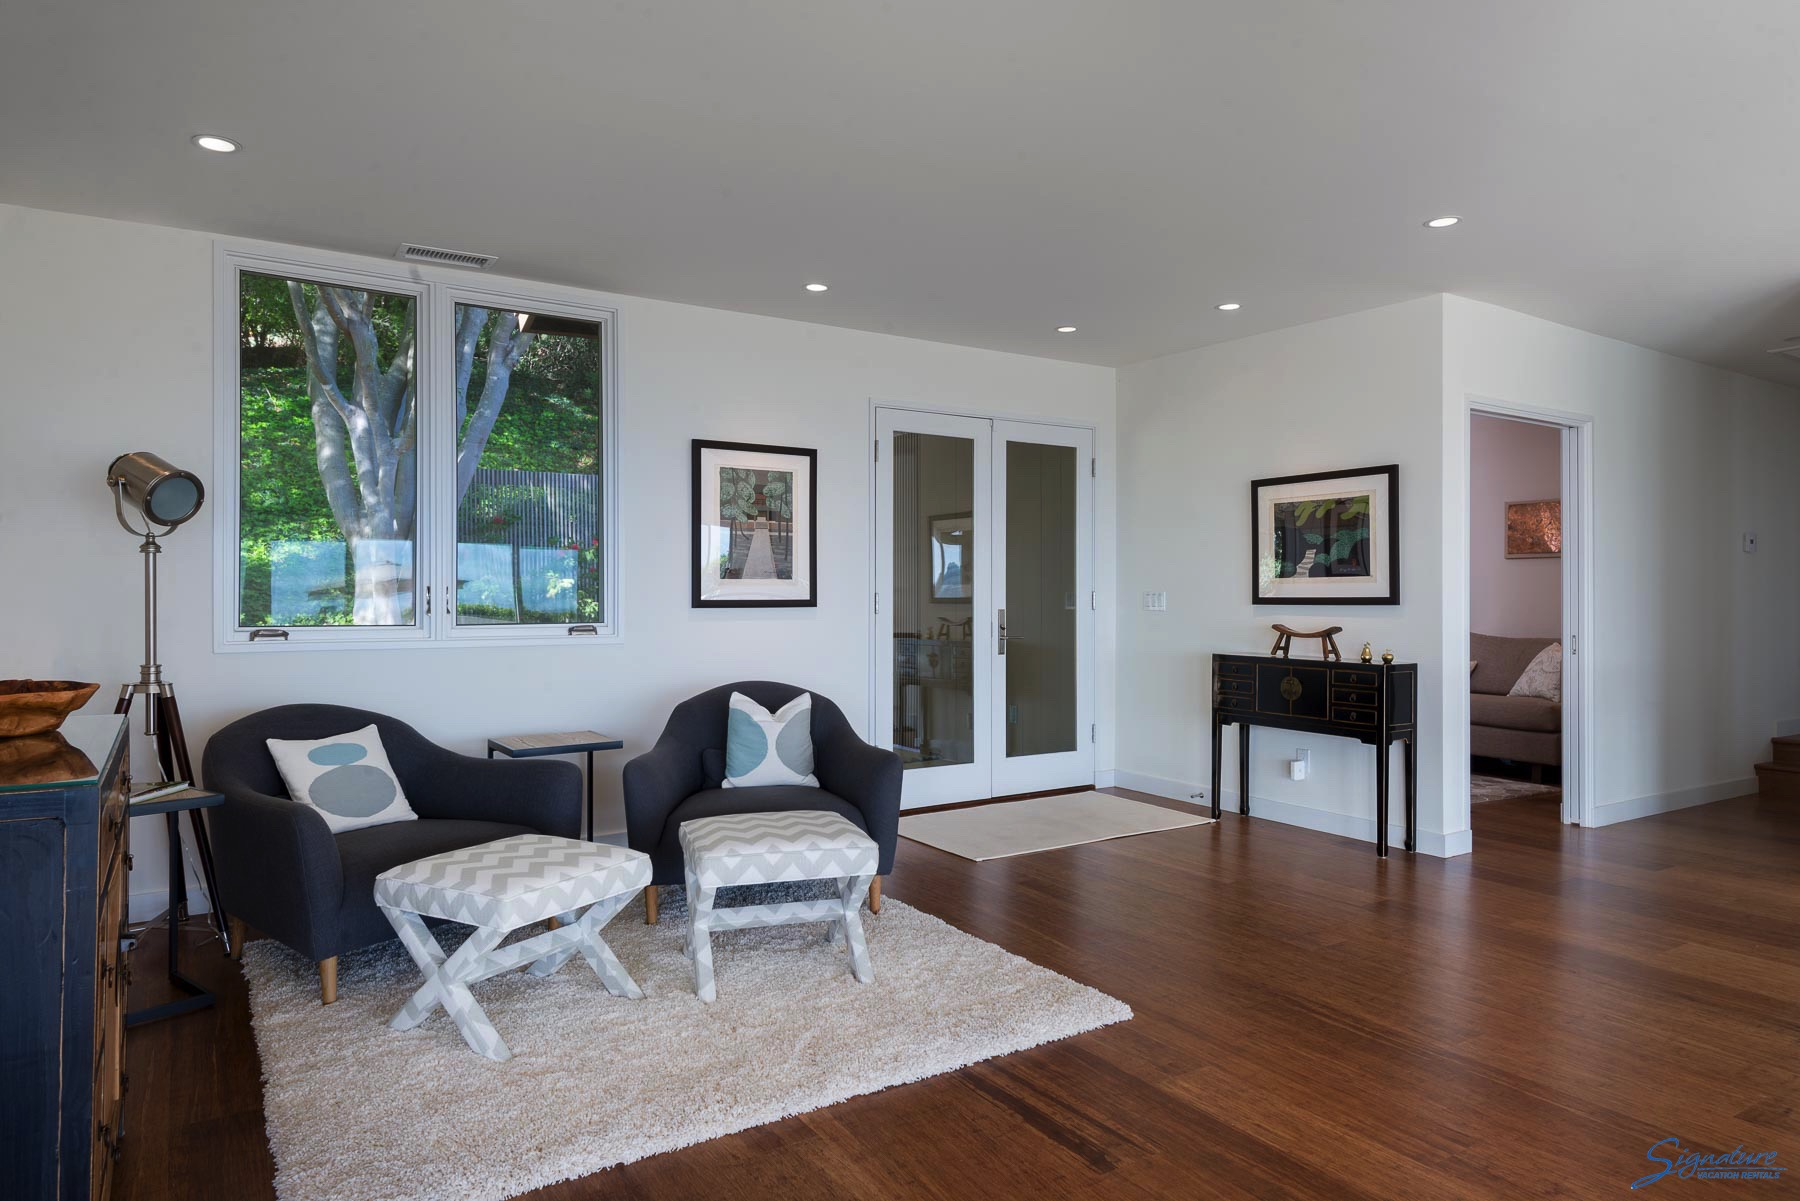 Beautiful wood floors throughout the home. This is a sitting area at the front entrance.